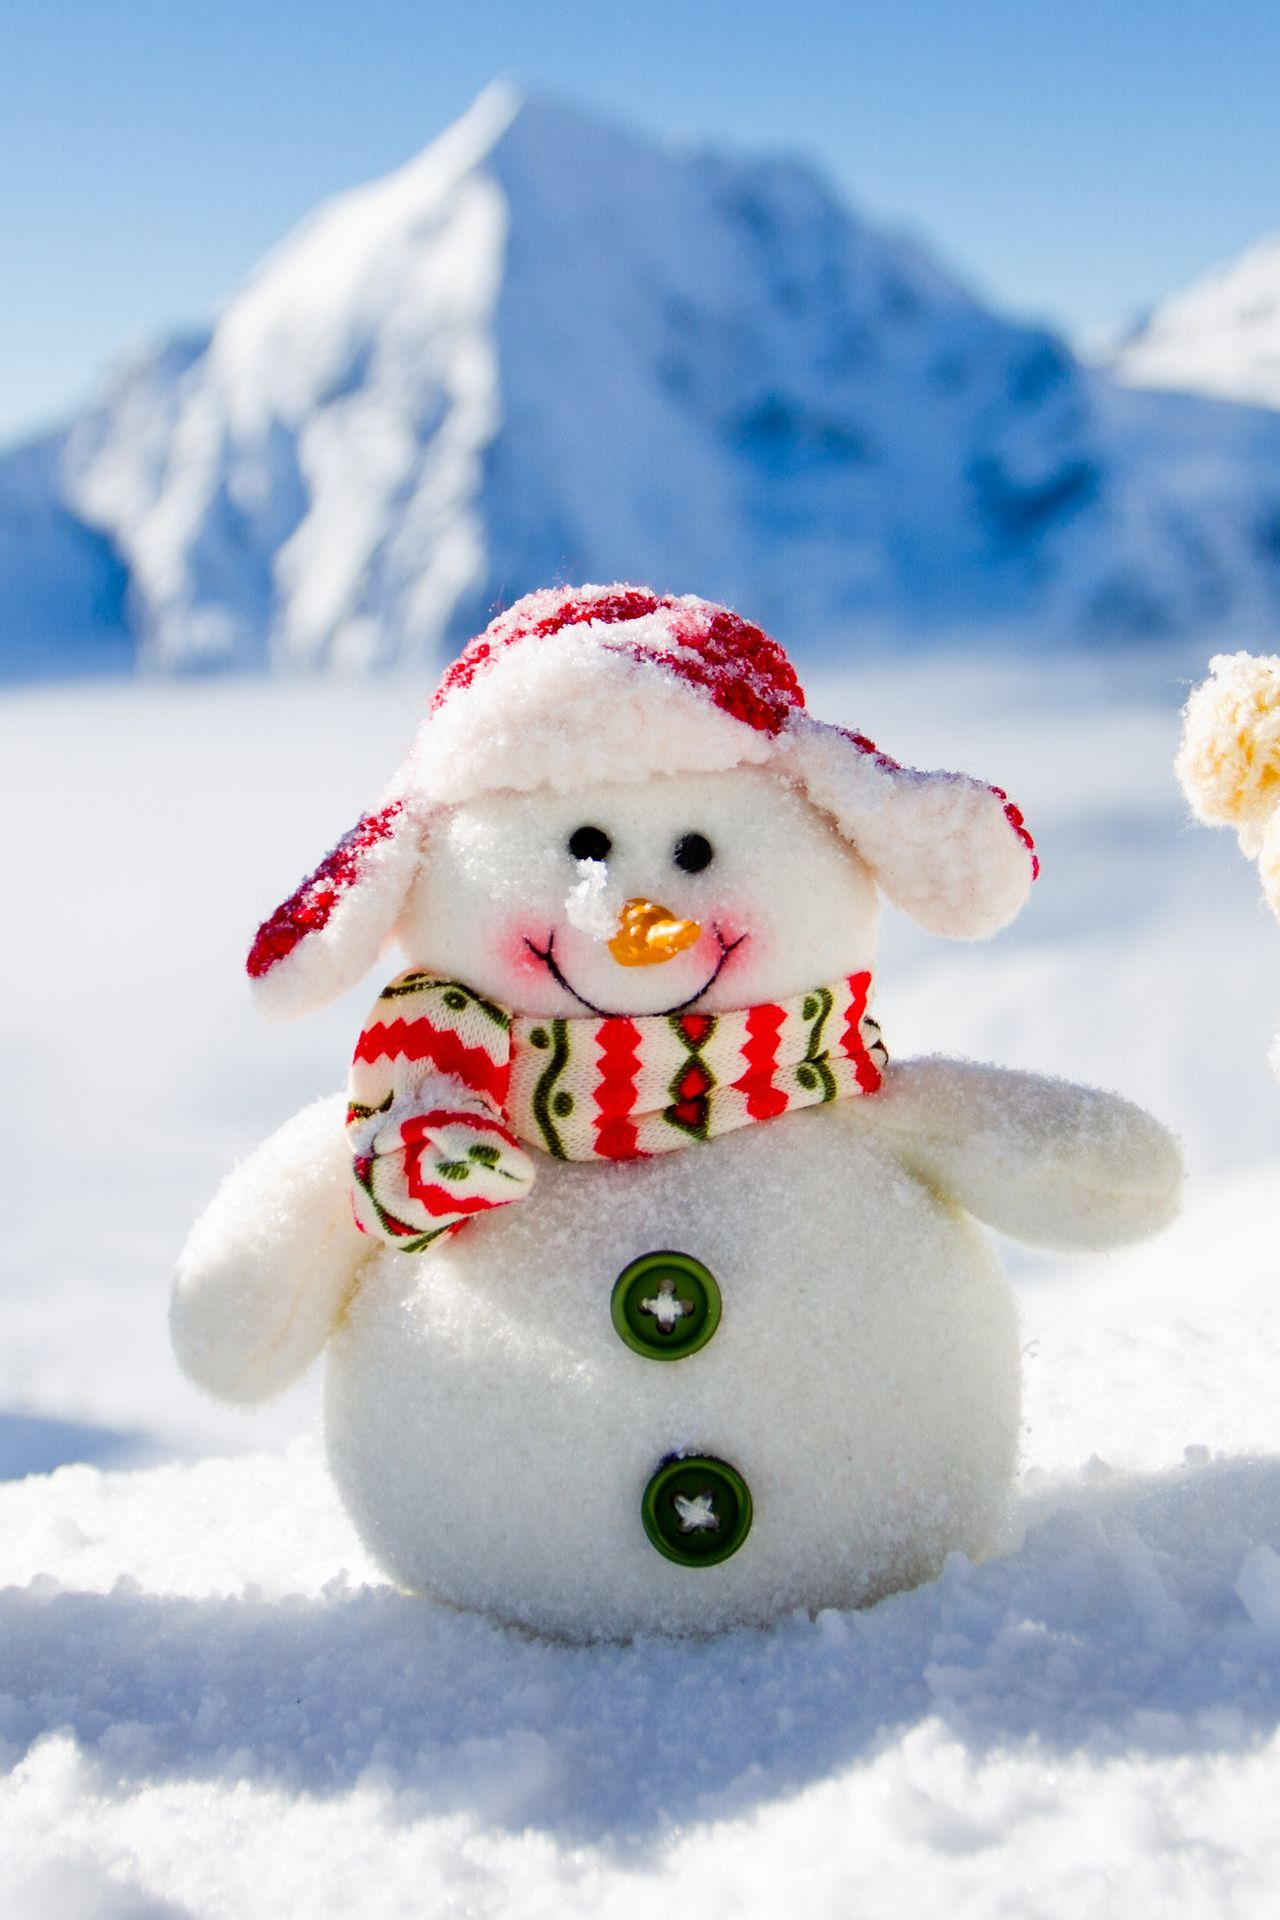 merry christmas snowman hat scarf happy smile 1280x1920